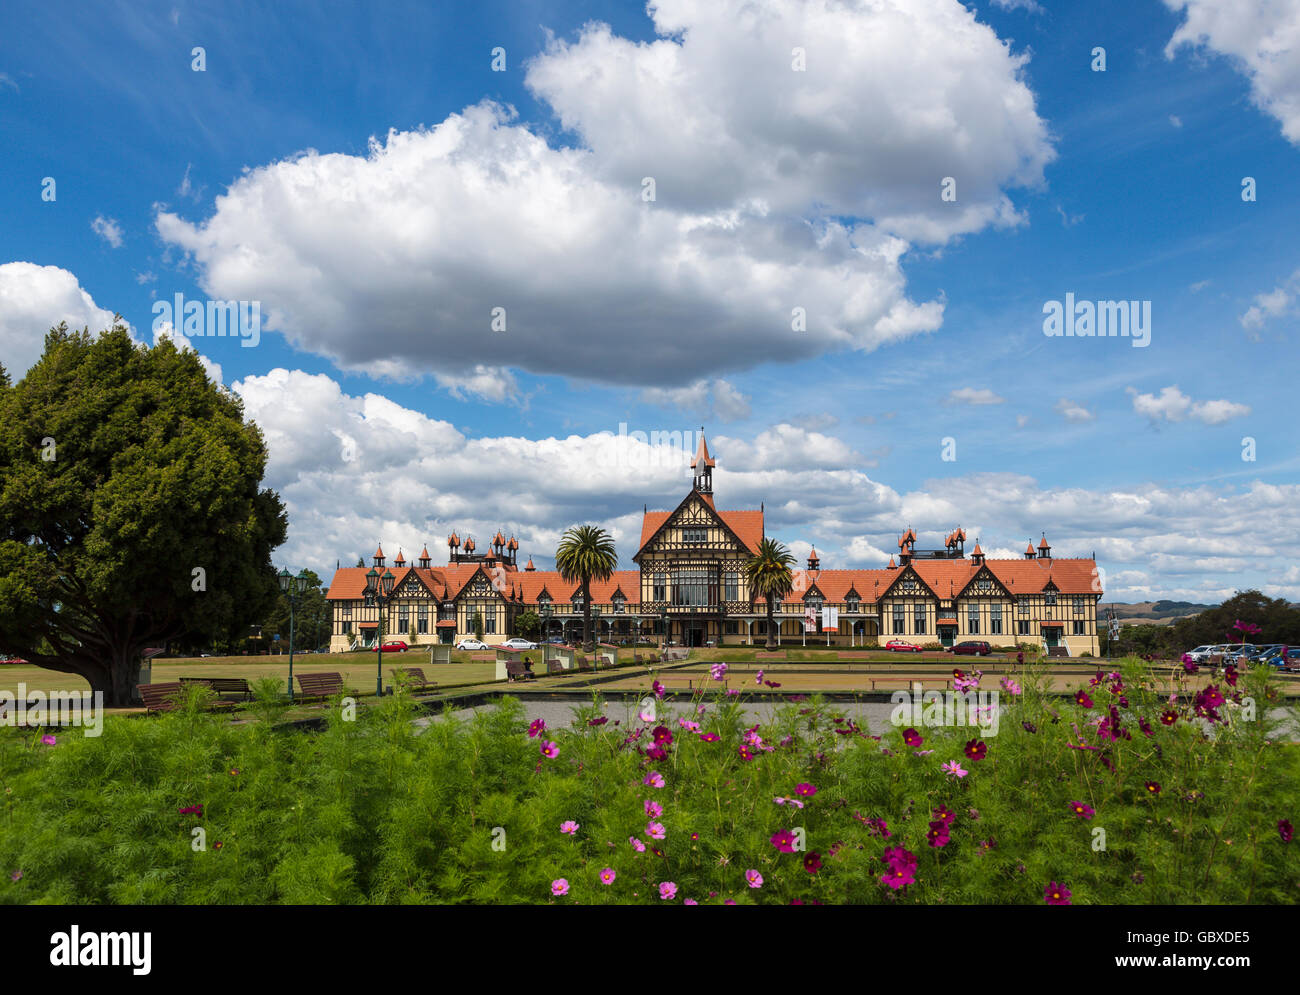 Bath House Museum Stock Photos & Bath House Museum Stock Images - Alamy